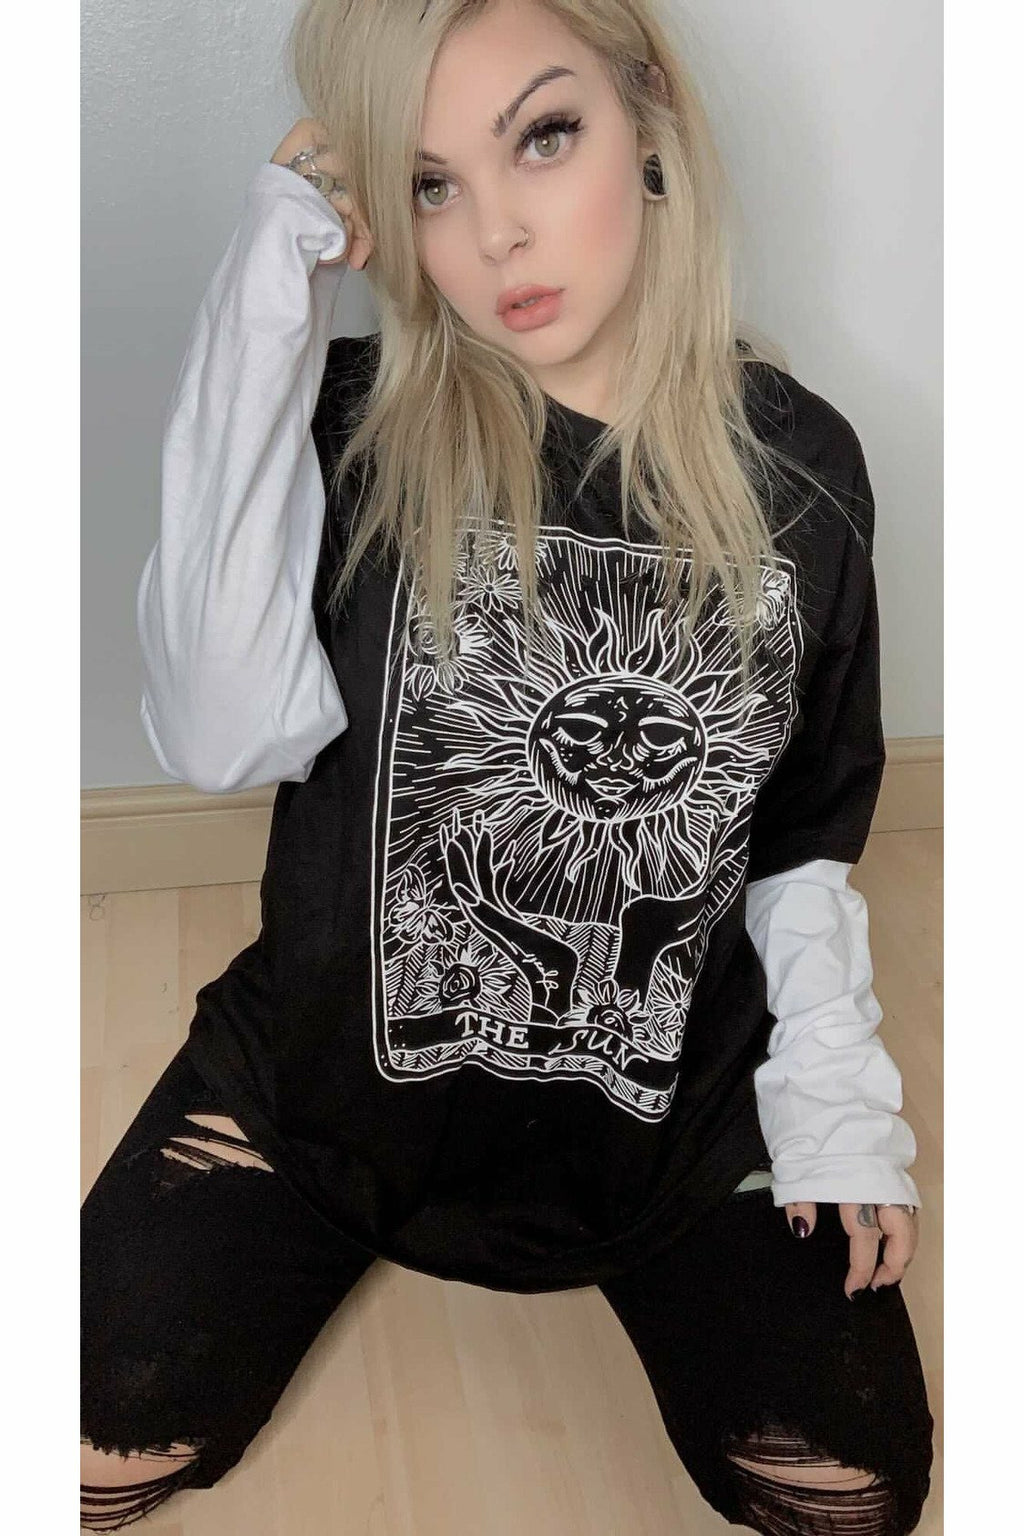 The Sun Tarot Card Layered Top